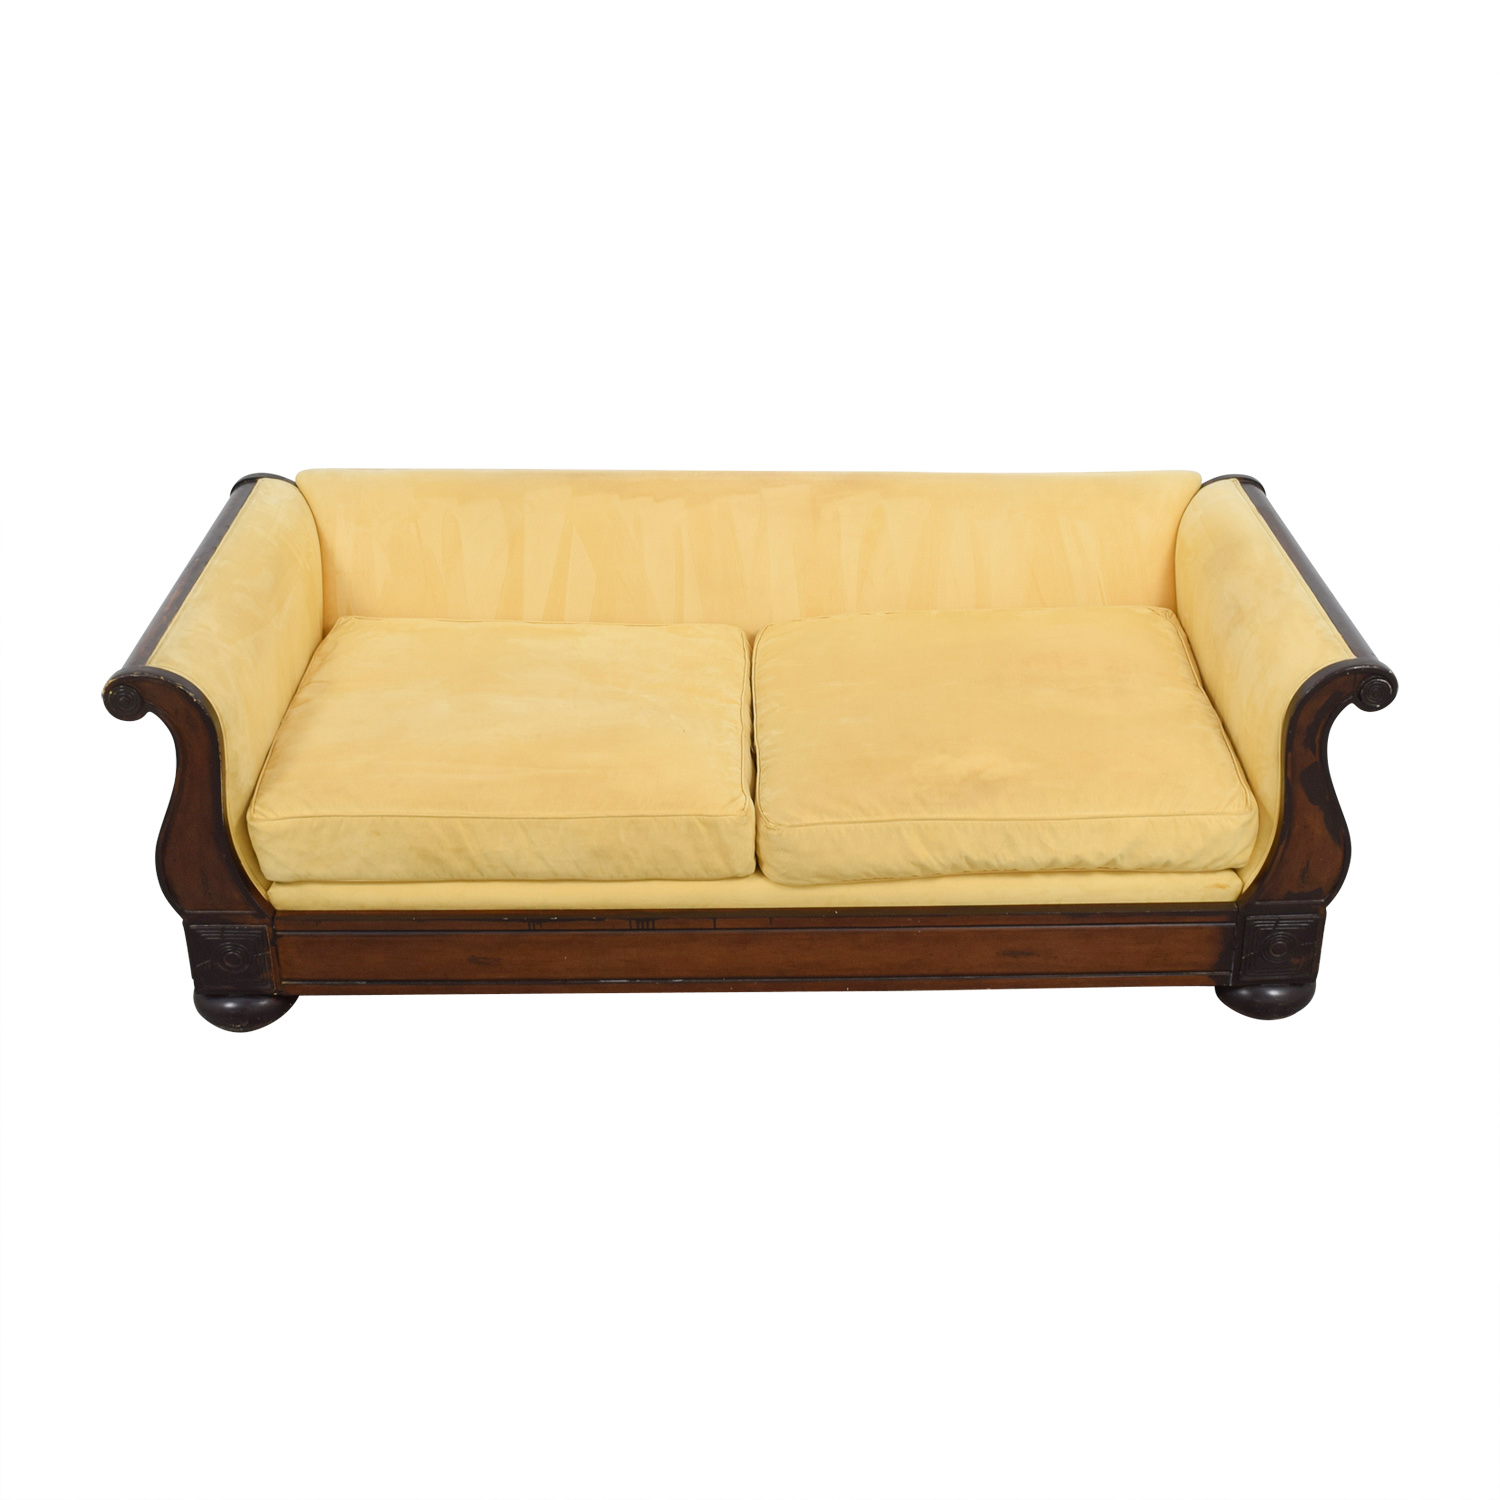 Crate & Barrel Crate & Barrel Yellow Two-Cushion Couch used